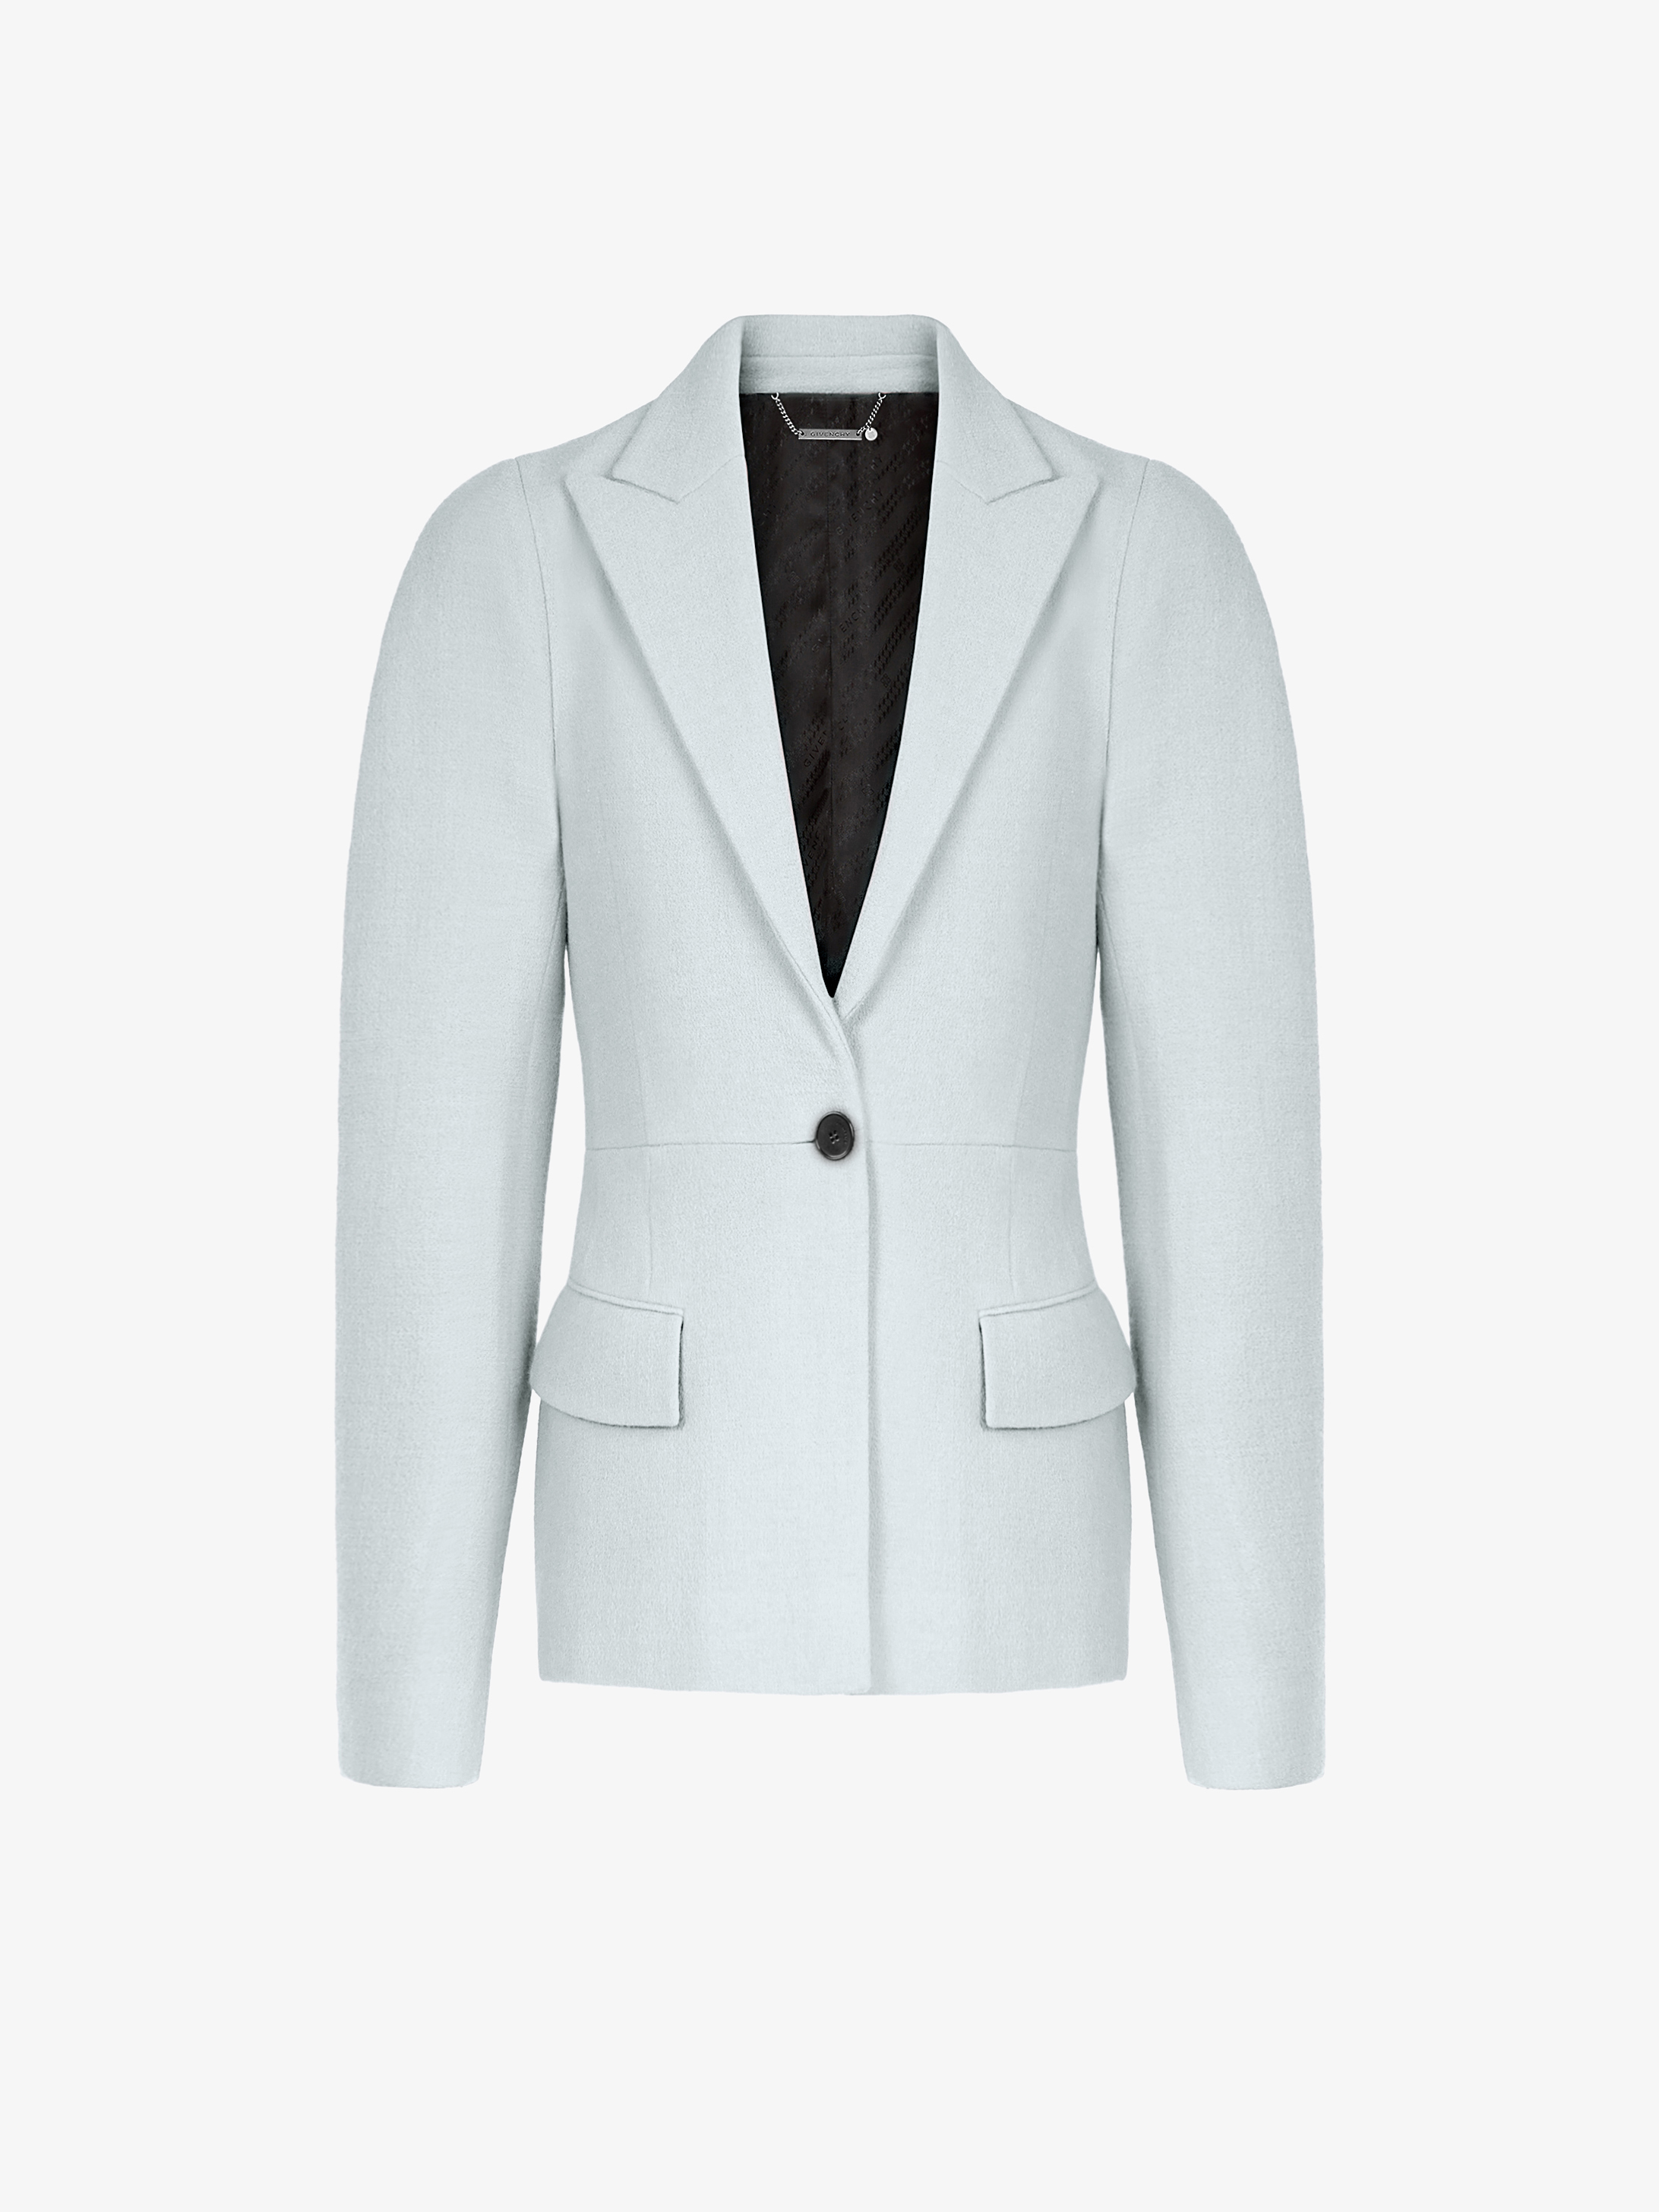 Peplum jacket in wool with curved shoulders